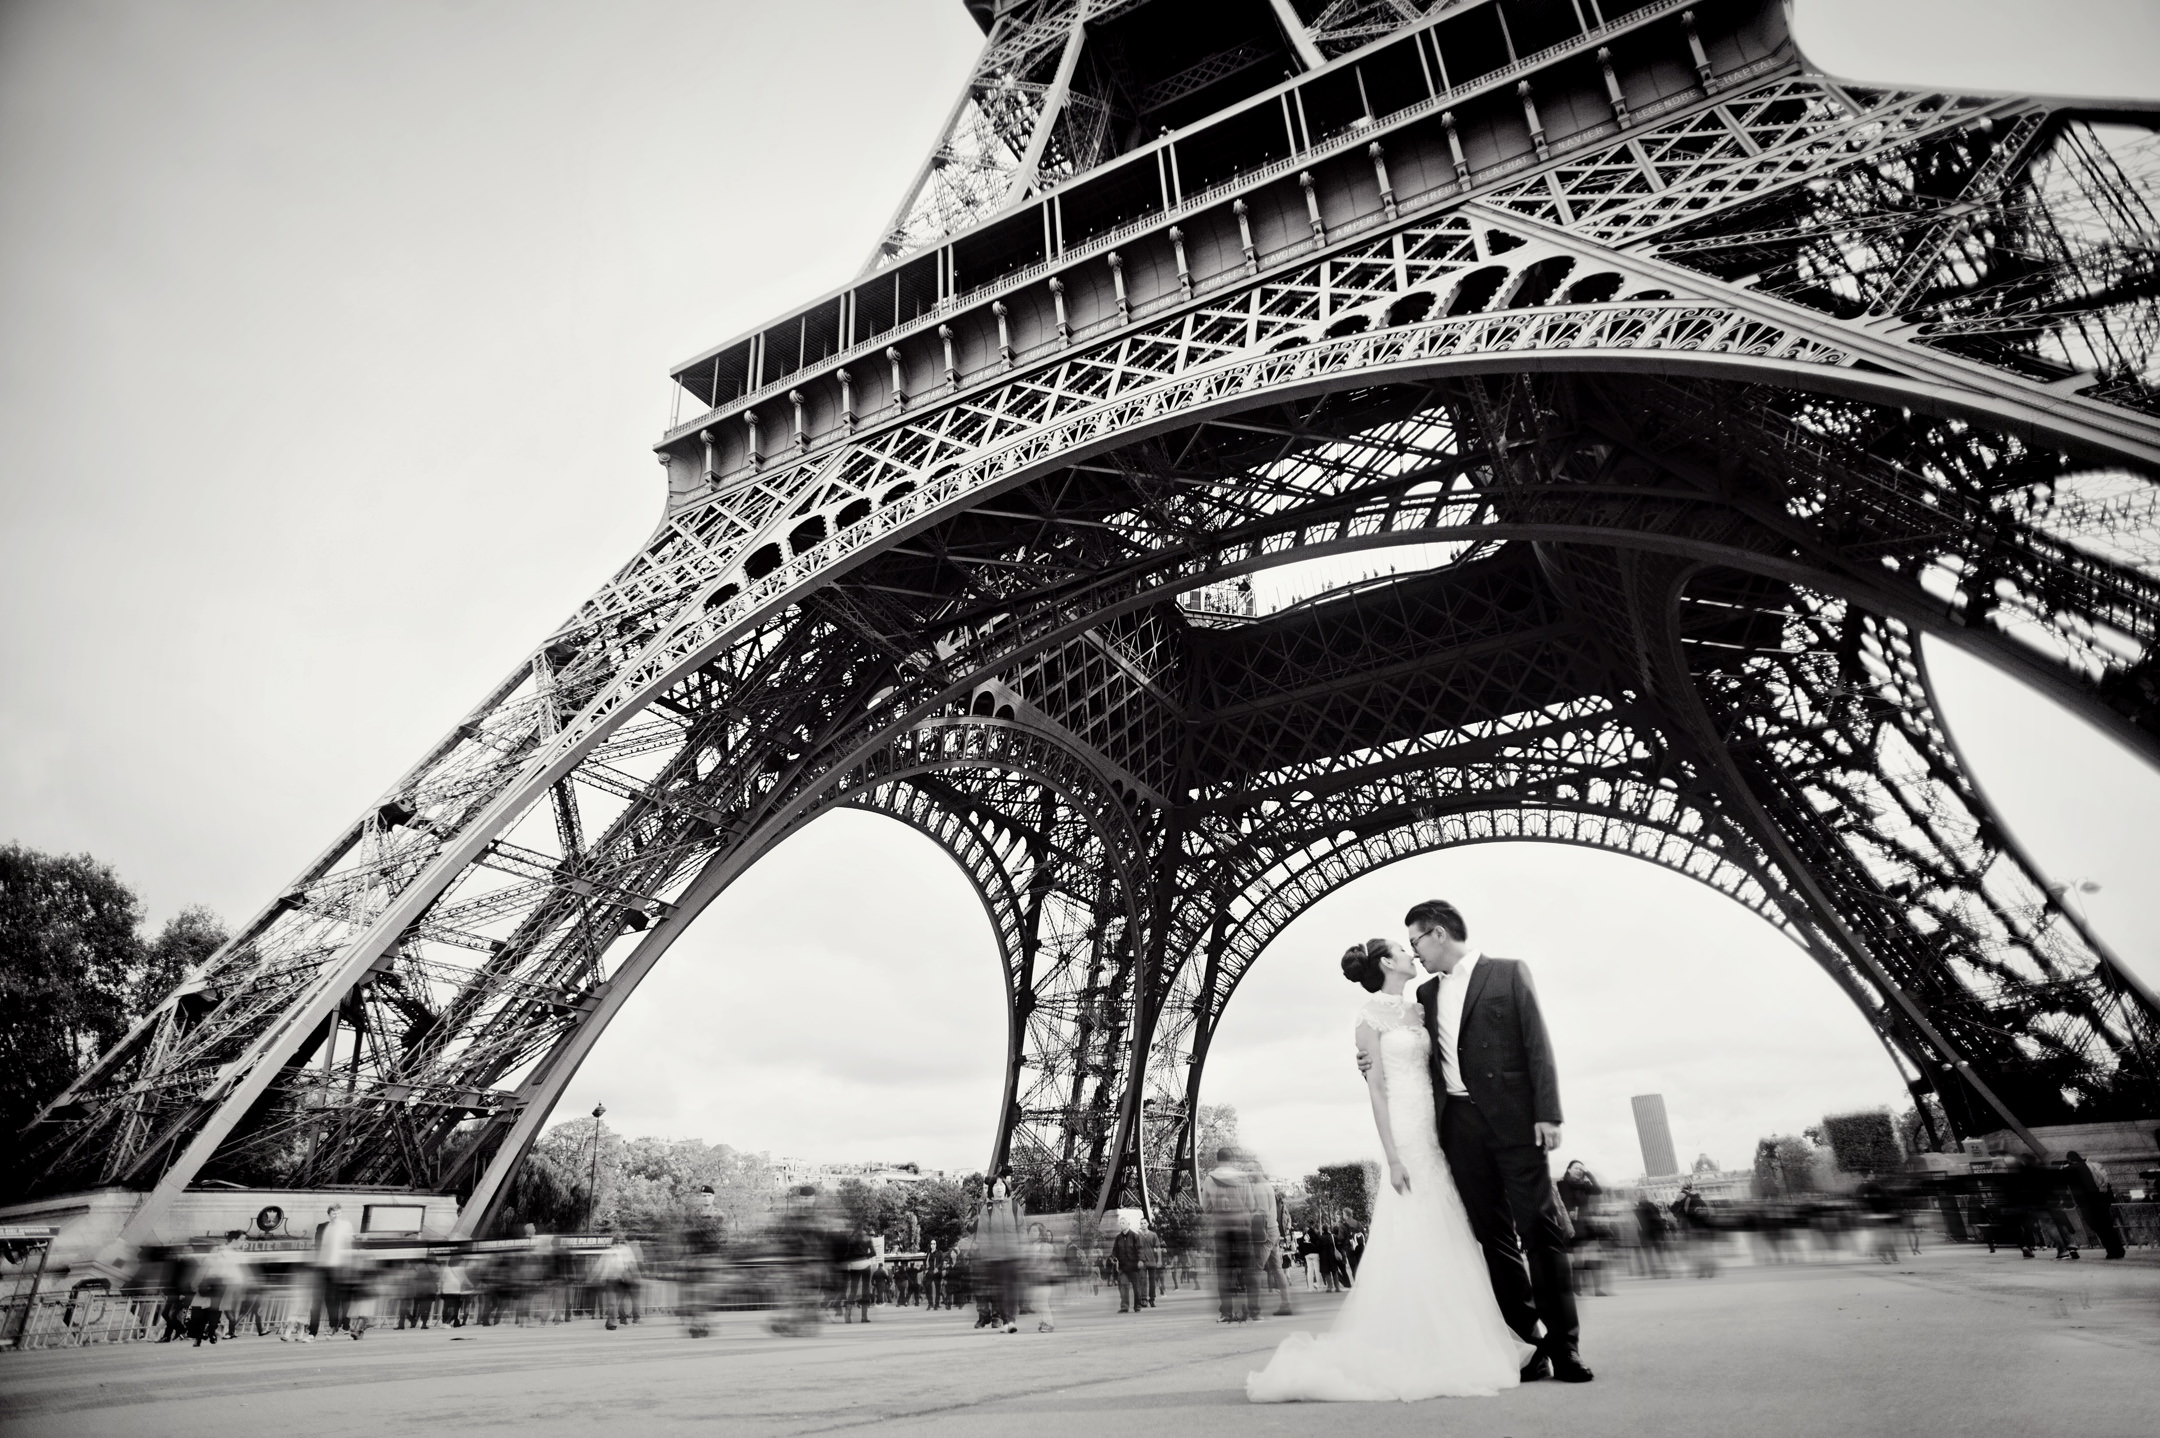 Chris_Hui_婚禮_婚紗照_pre_wedding_photography_best_014_巴黎_埃菲尔铁塔_Paris_Eiffle_Tower.jpg